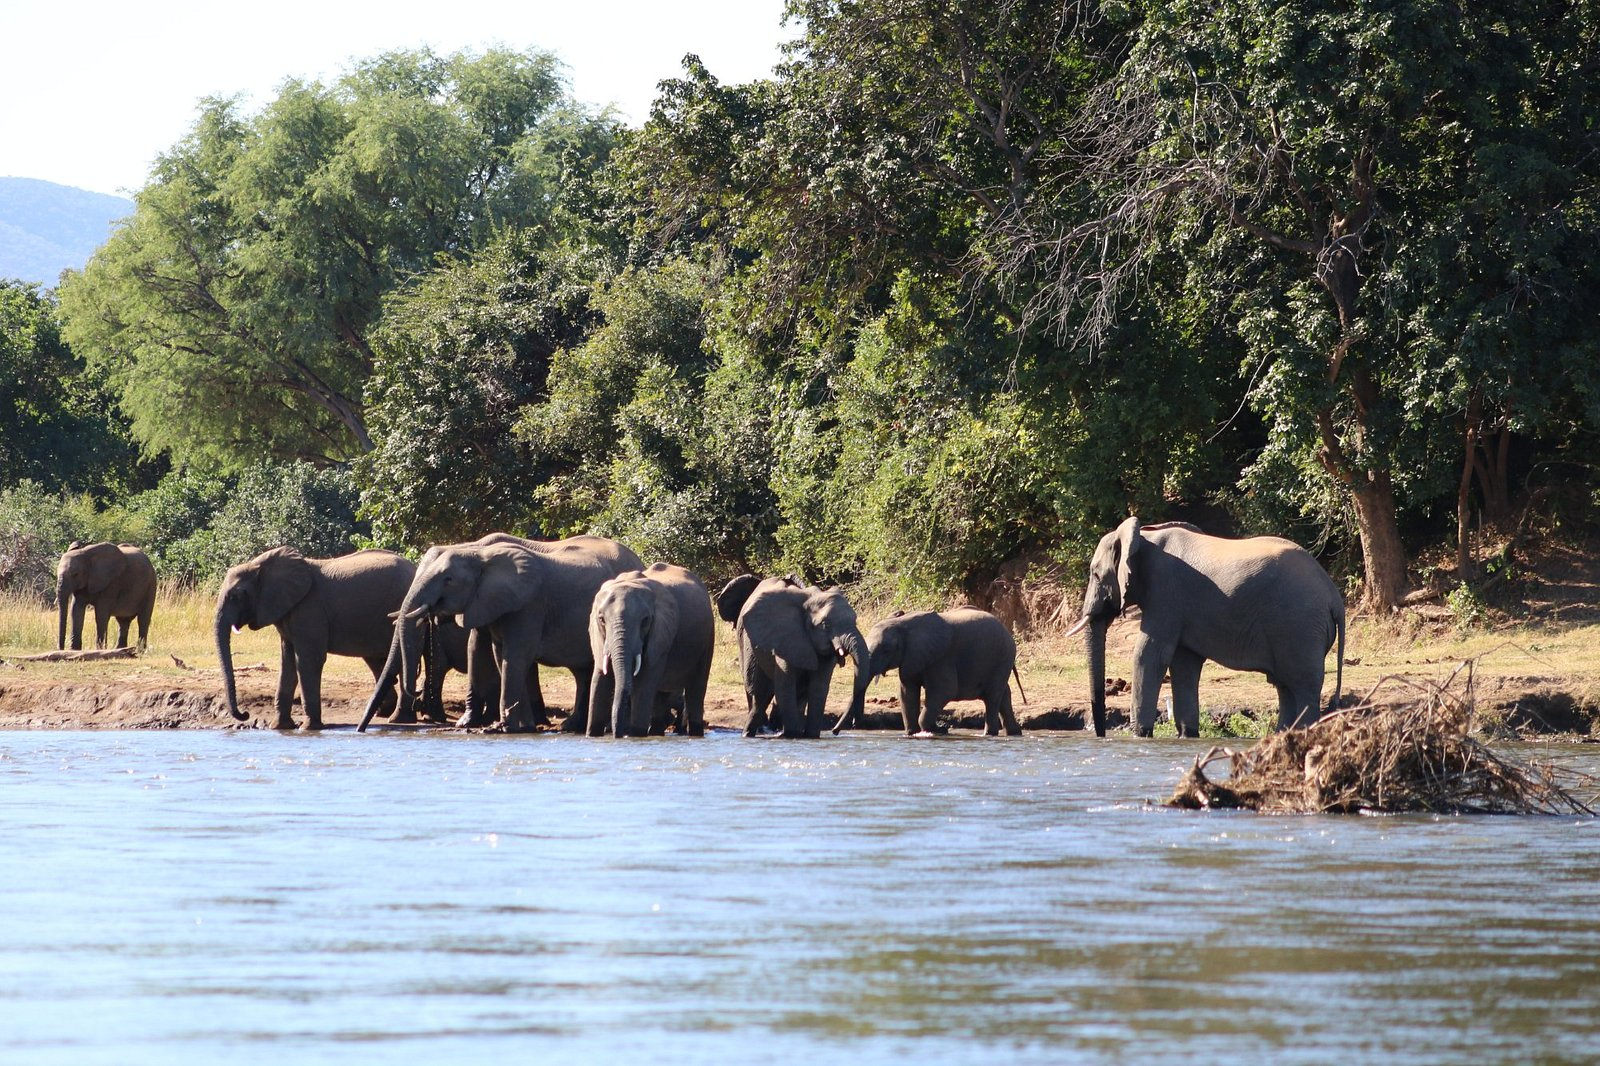 Elephants on the river bank just a short distance from the lodge